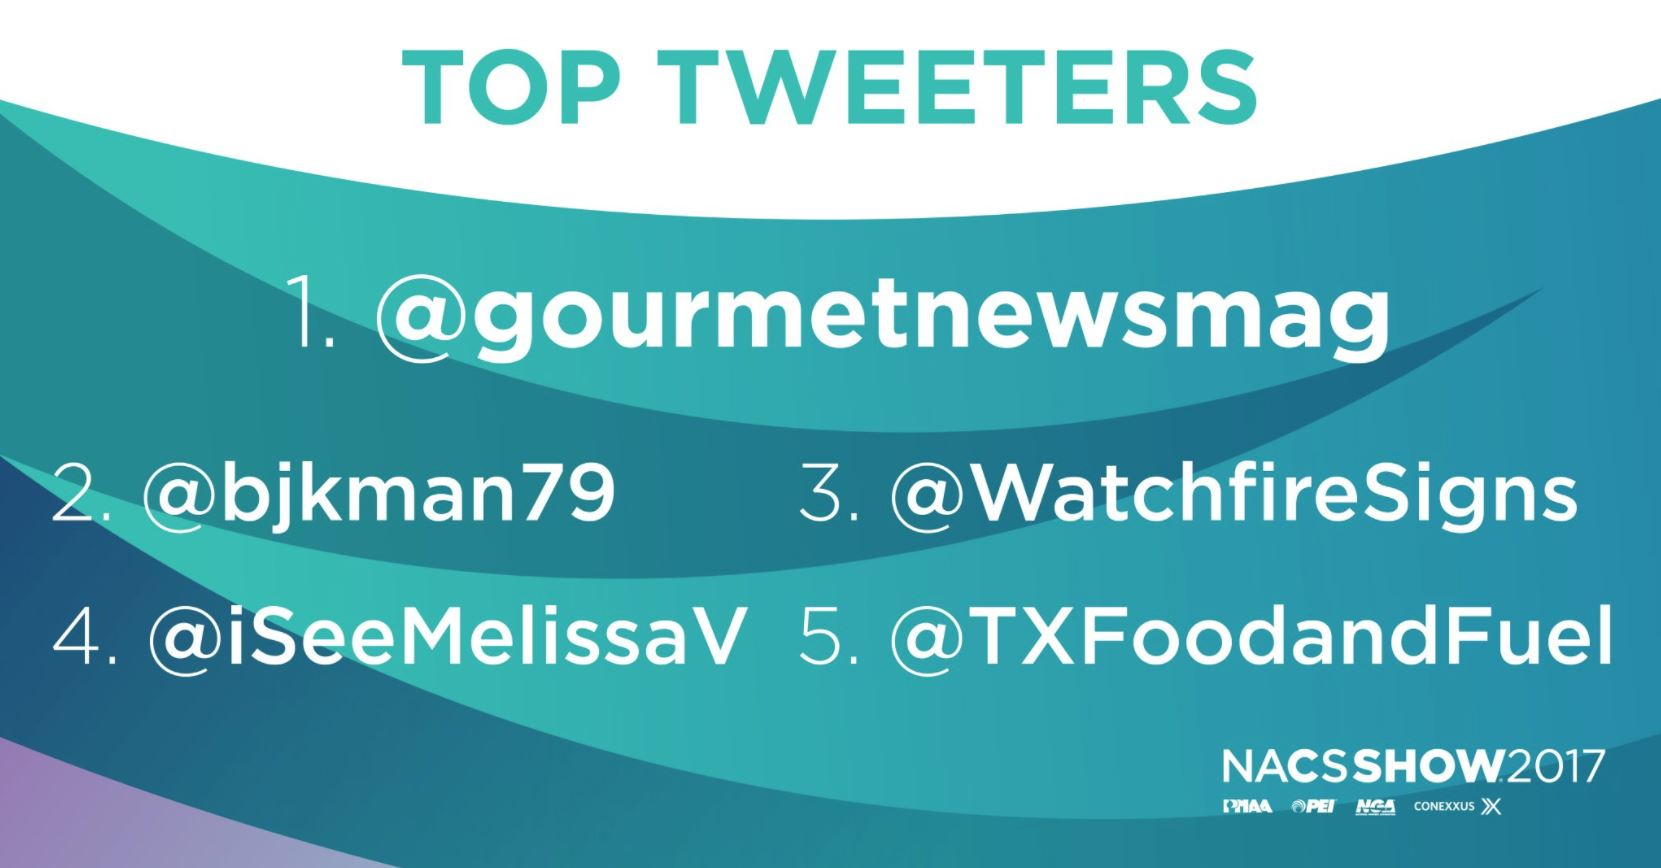 """NACS Show 2017 """"Top Tweeter"""" Recognition"""